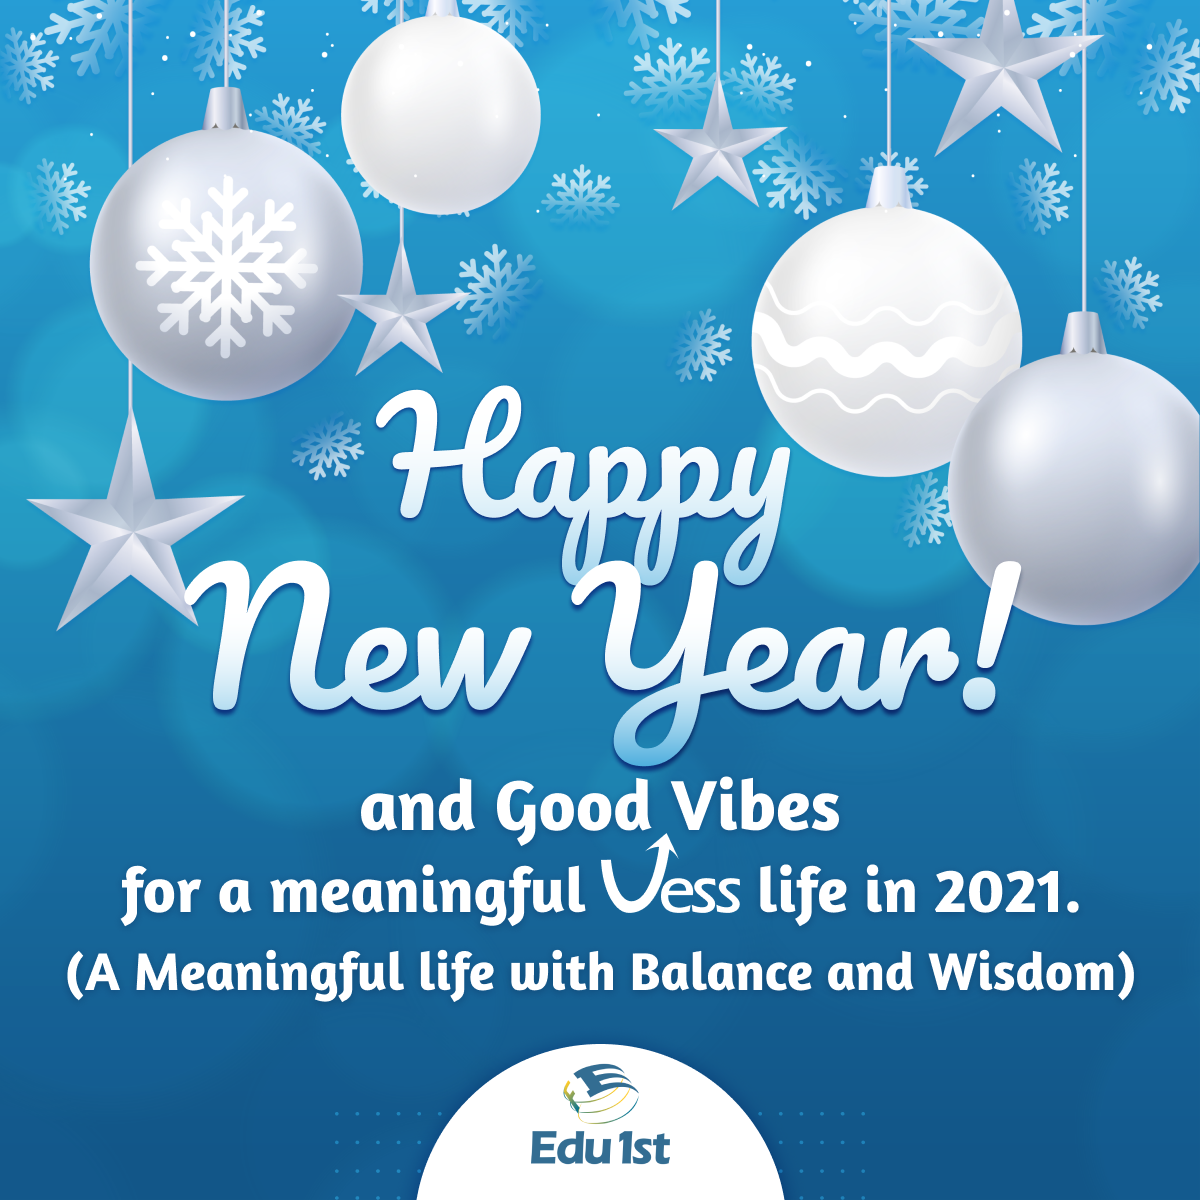 We are grateful to have families like you, who are a pleasure to deal with, and we wish you a New Year as cheerful and happy as you and your children are.